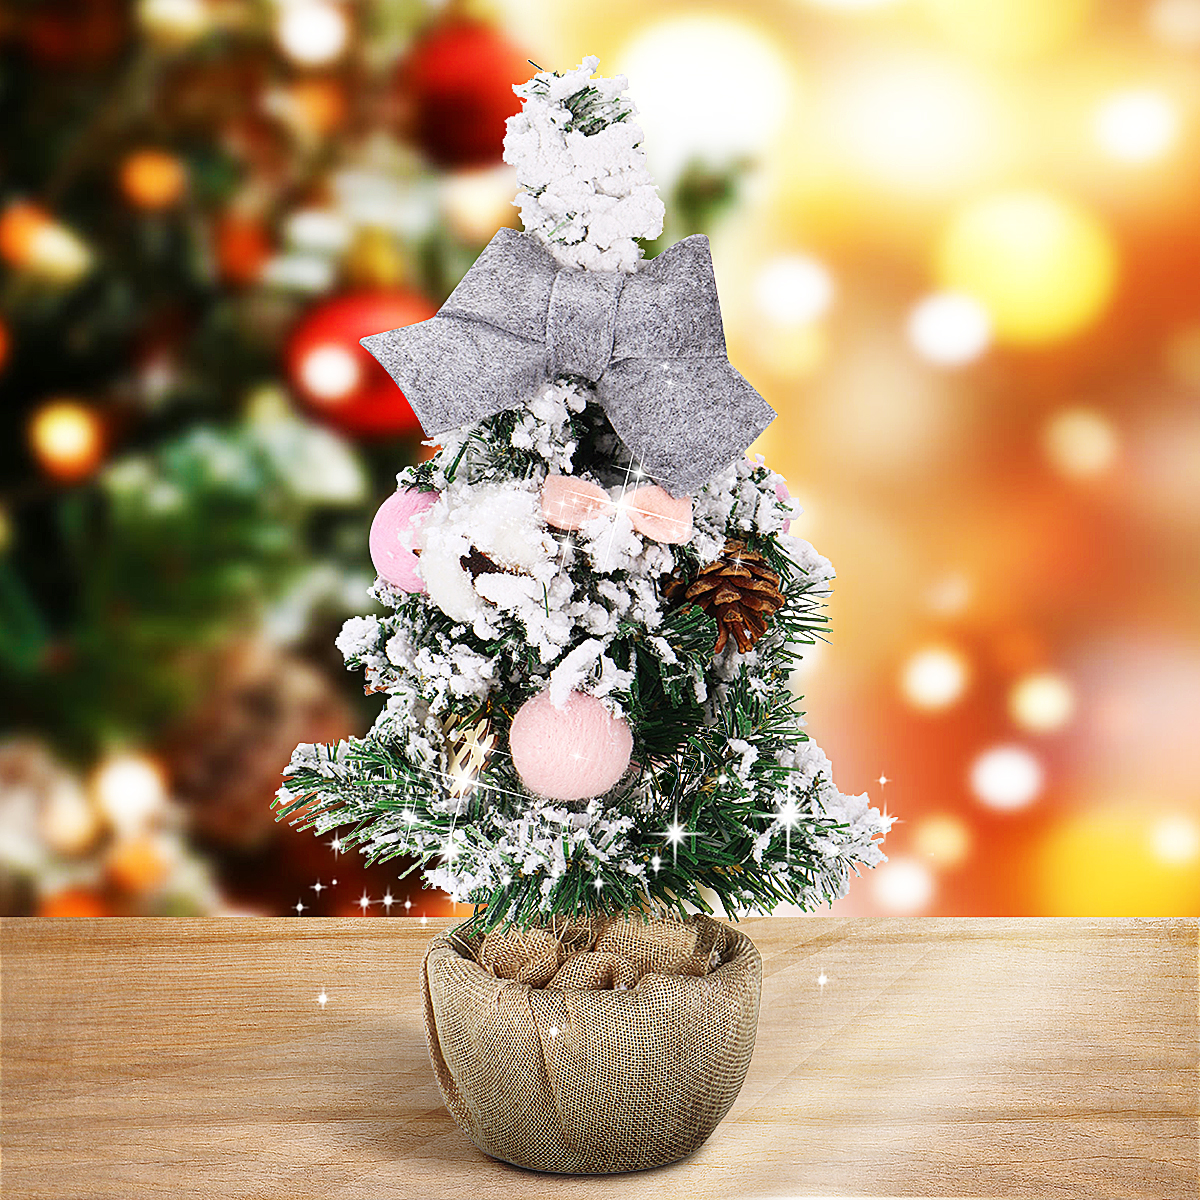 2ft Mini Flocked Christmas Trees Small Christmas Tree With Snow Artificial Tabletop Christmas Tree Realistic Miniature Tiny Desk Top Table Faux Xmas Decorations Decor 25 Branch Tips White Walmart Com Walmart Com